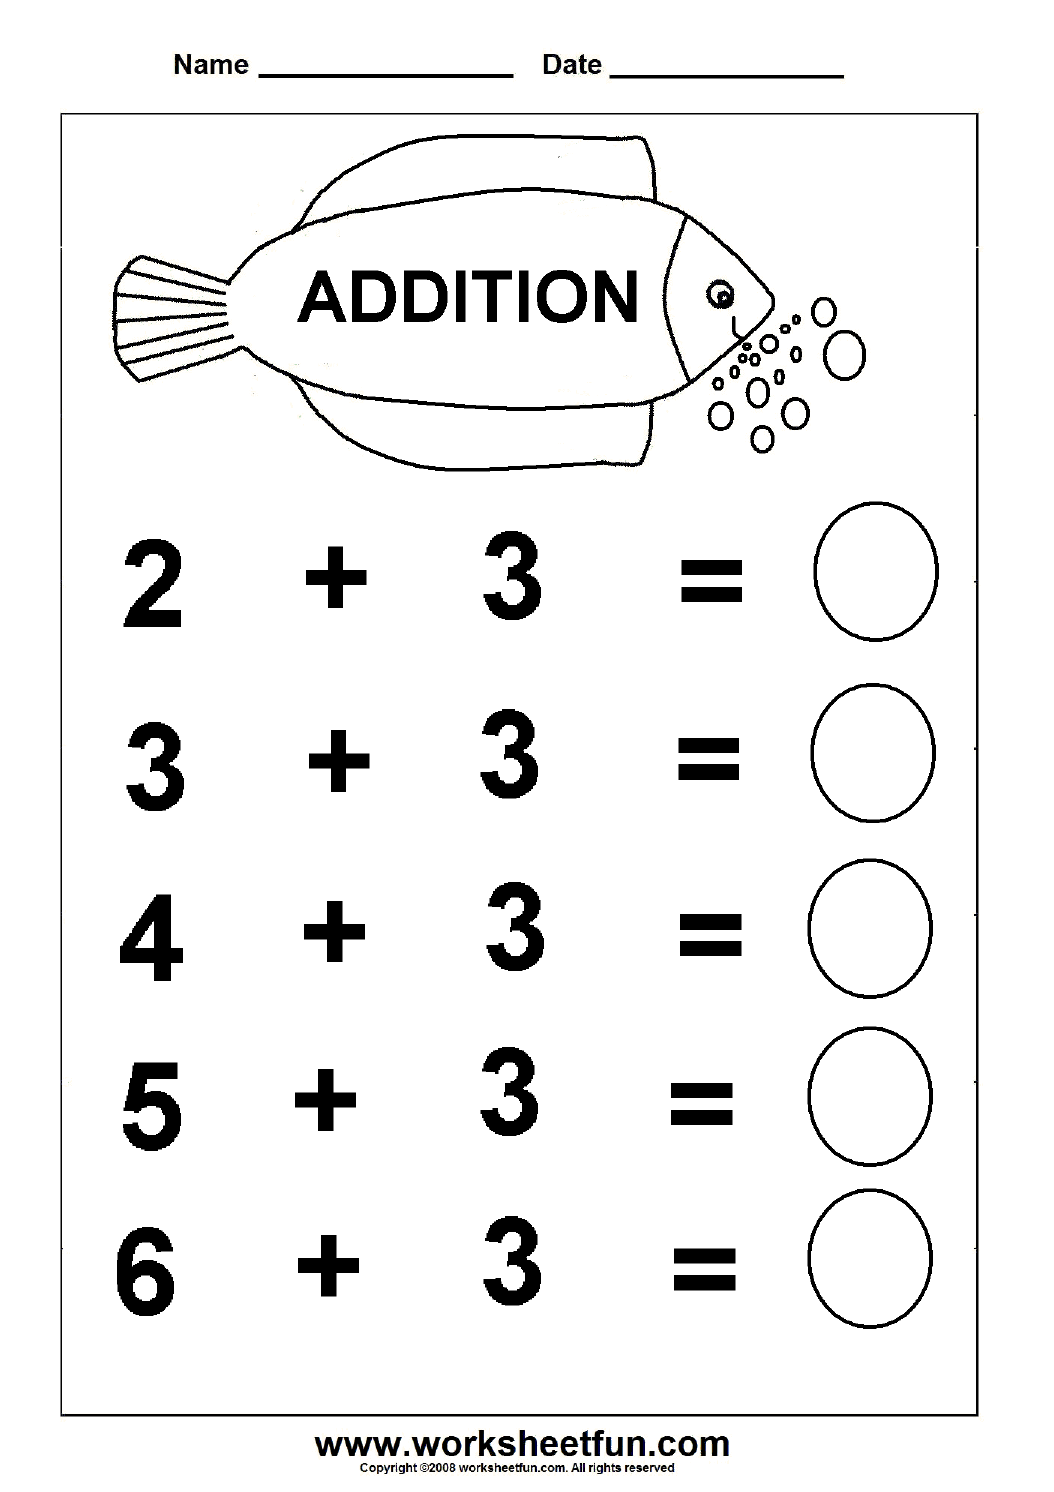 Addition Basic Addition Facts FREE Printable Worksheets – Kindergarten Worksheets Addition